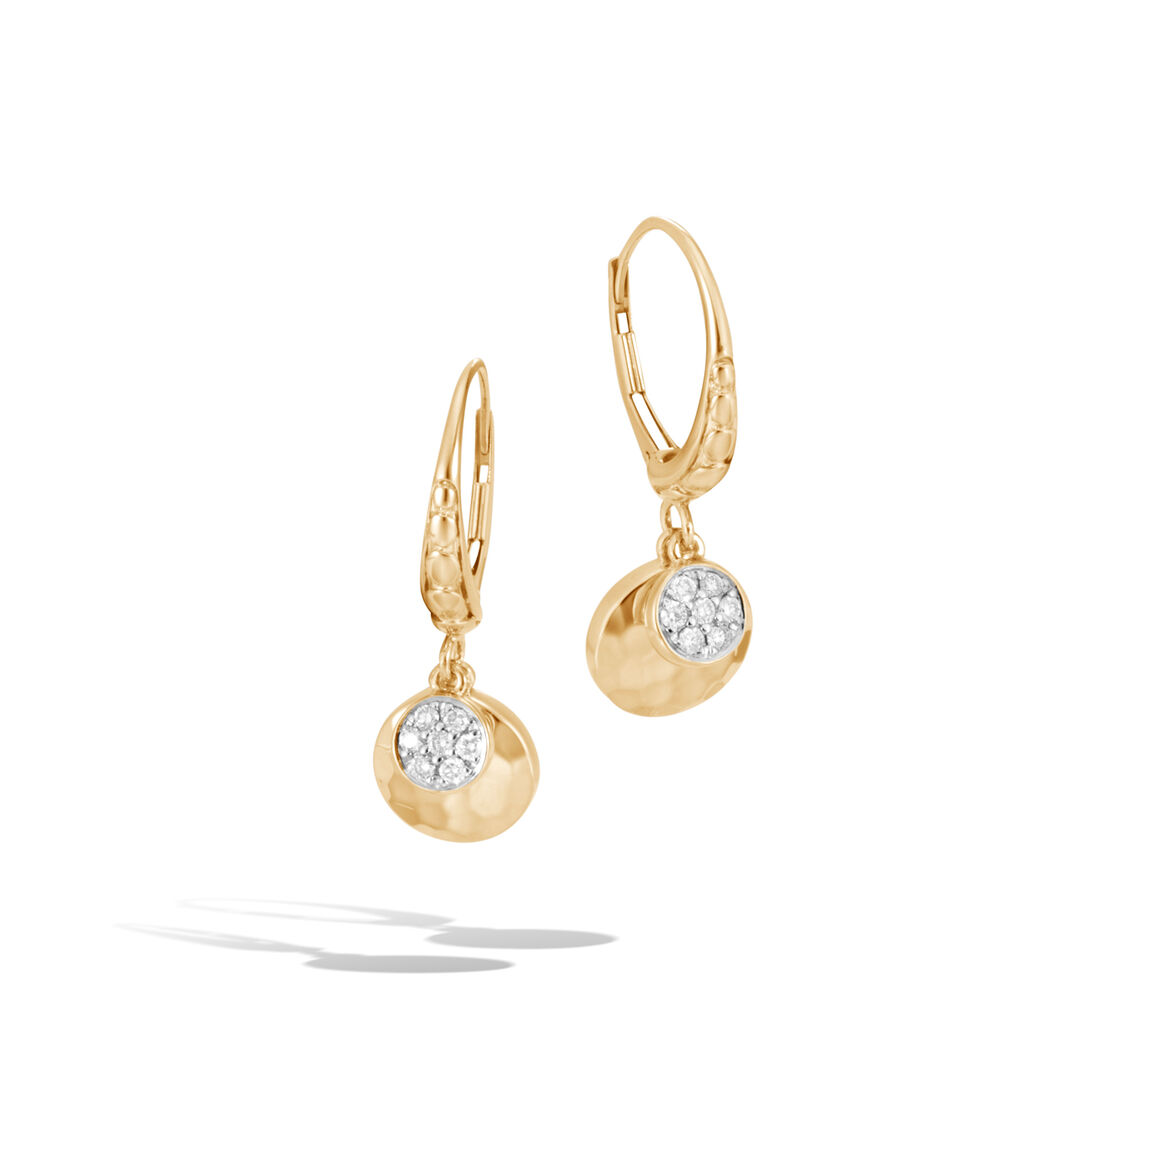 Dot Drop Earring in Hammered 18K Gold with Diamonds